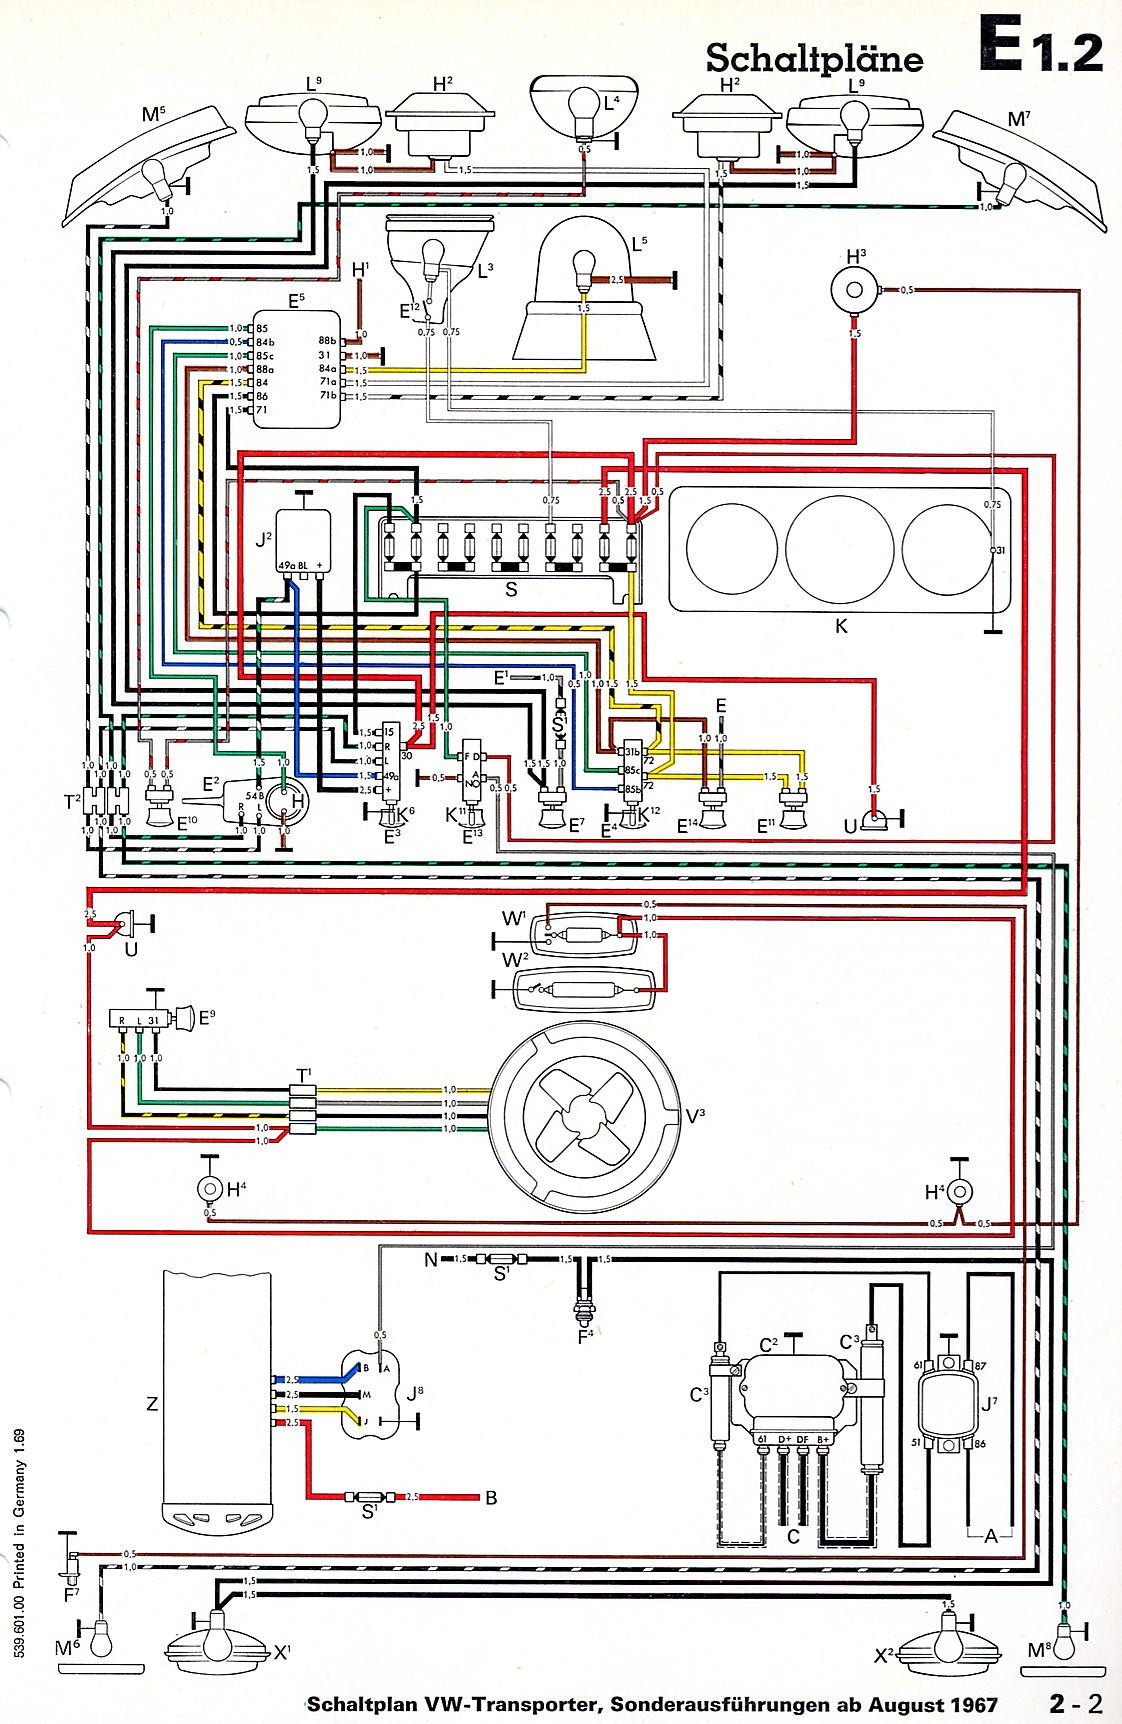 hight resolution of 2001 vw beetle 2 0 engine diagram vw wiring and fuses wiring info 2001 vw beetle